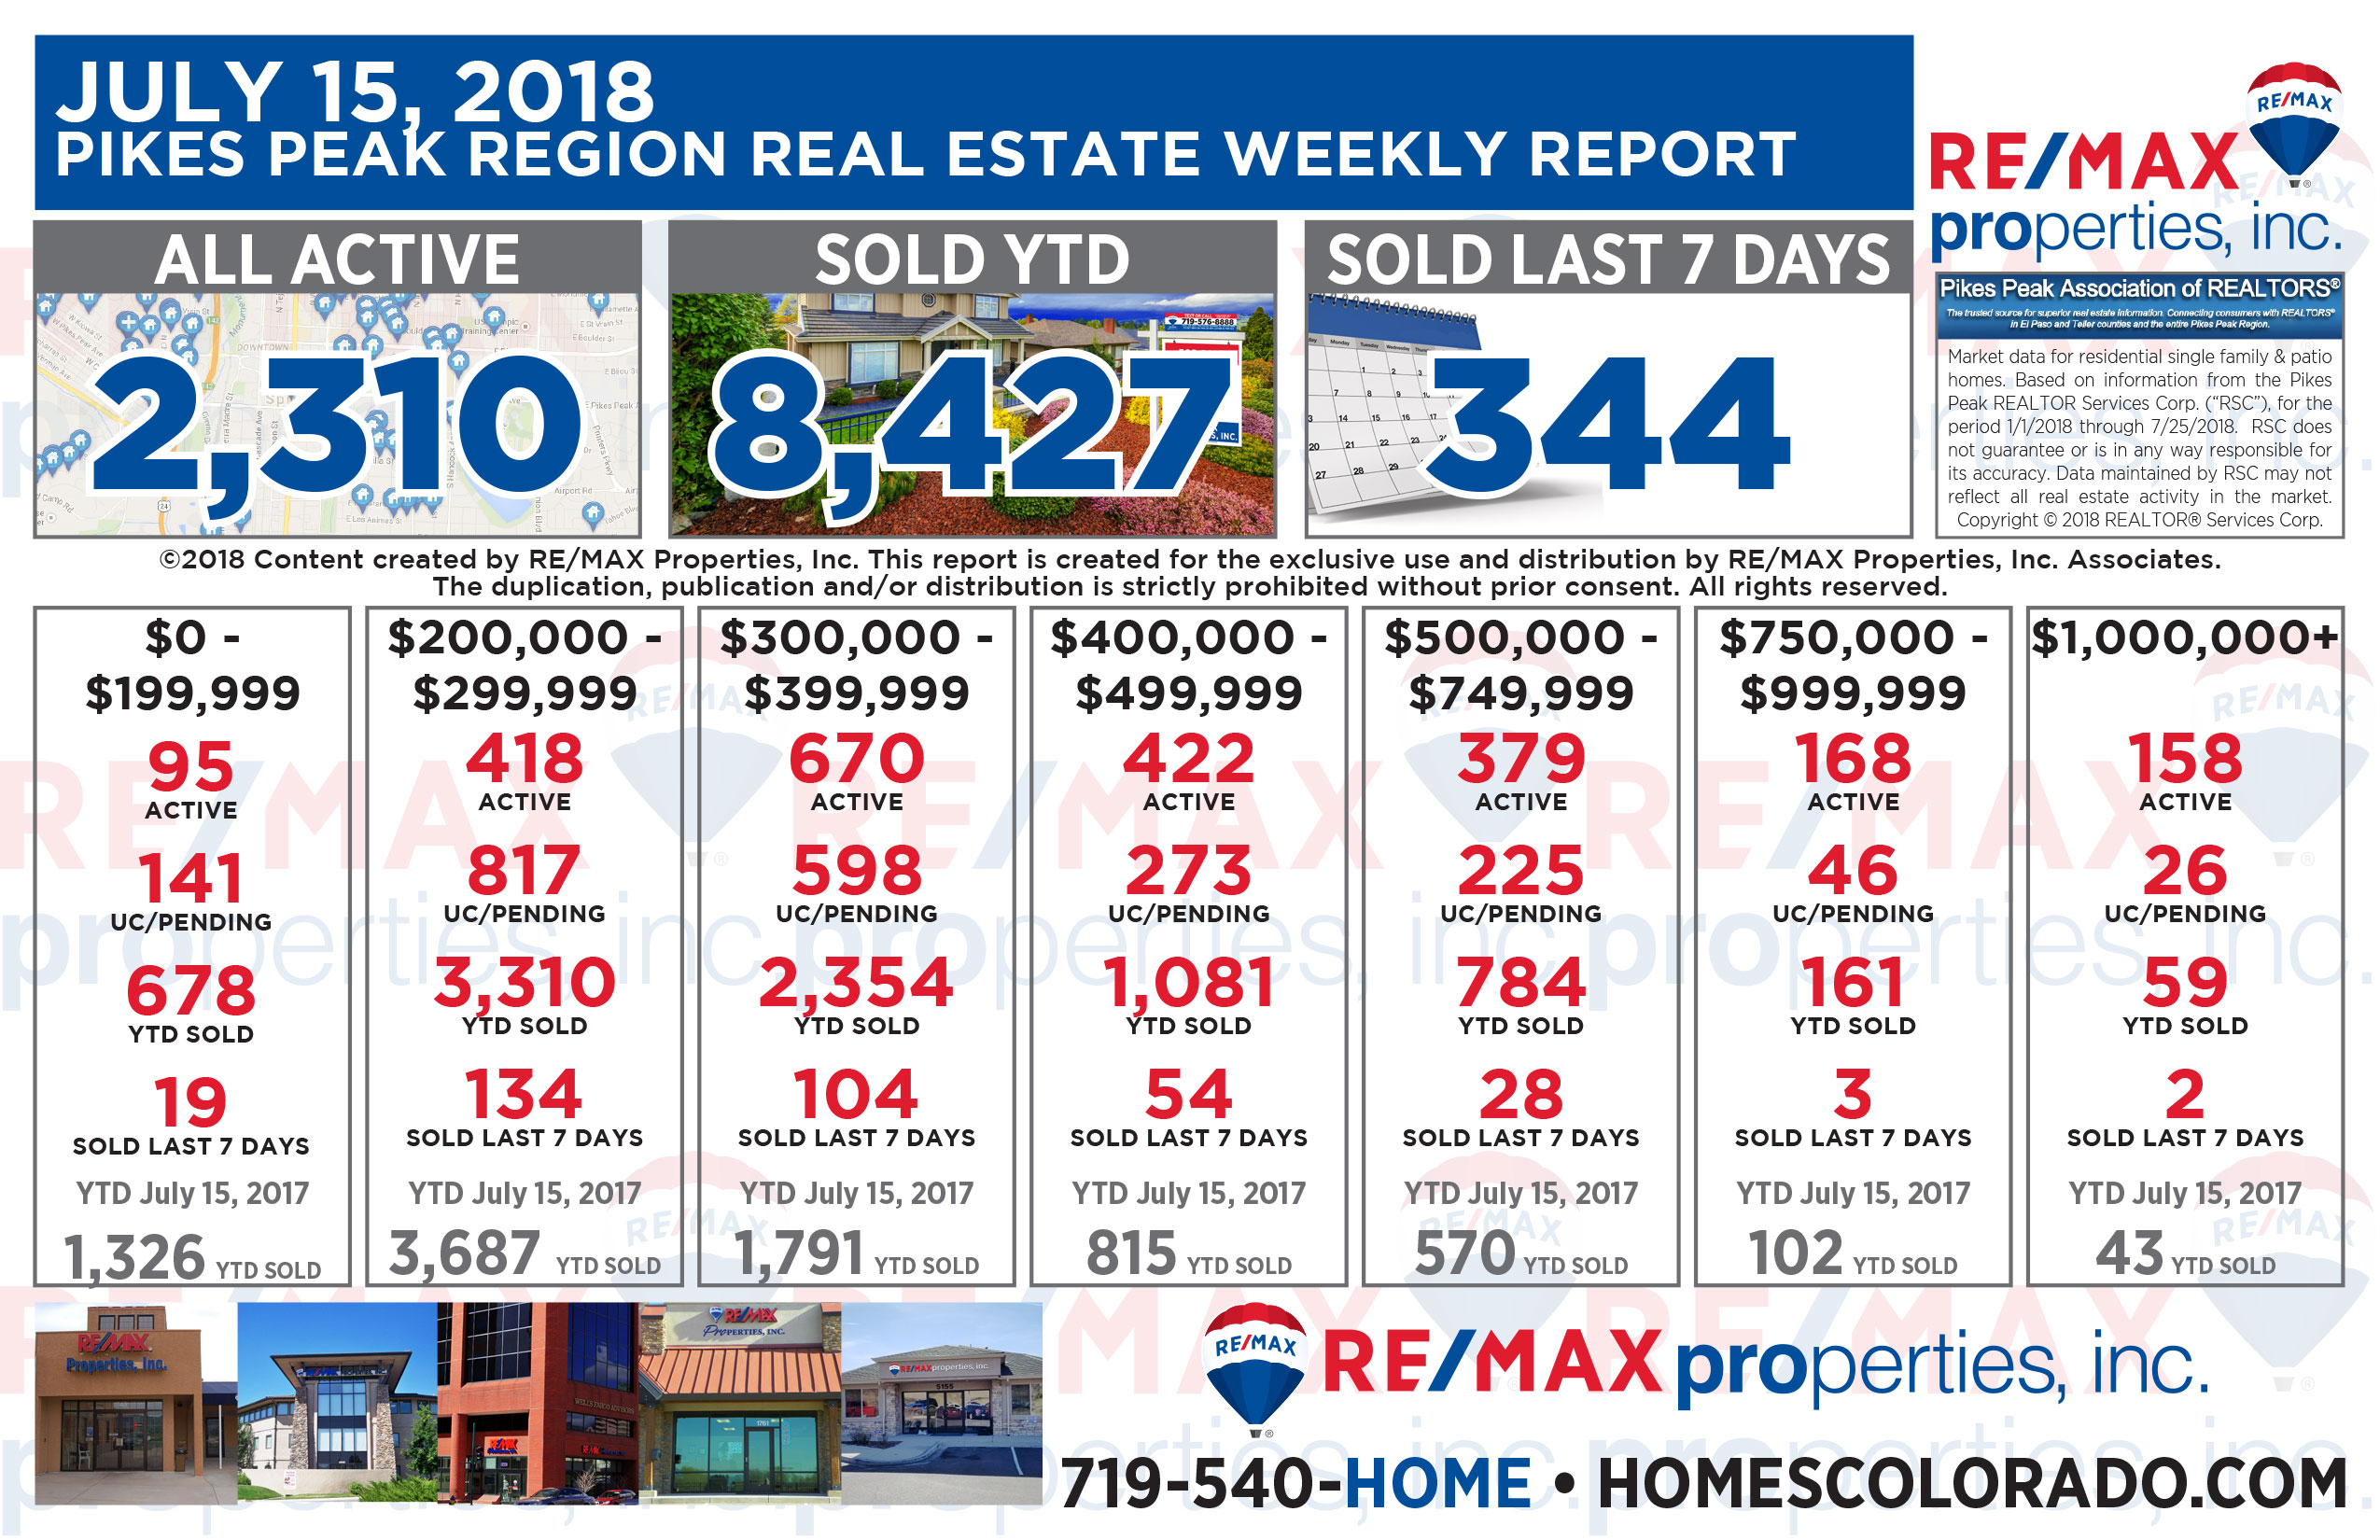 Colorado Springs Real Estate Market Weekly Update - July 15, 2018